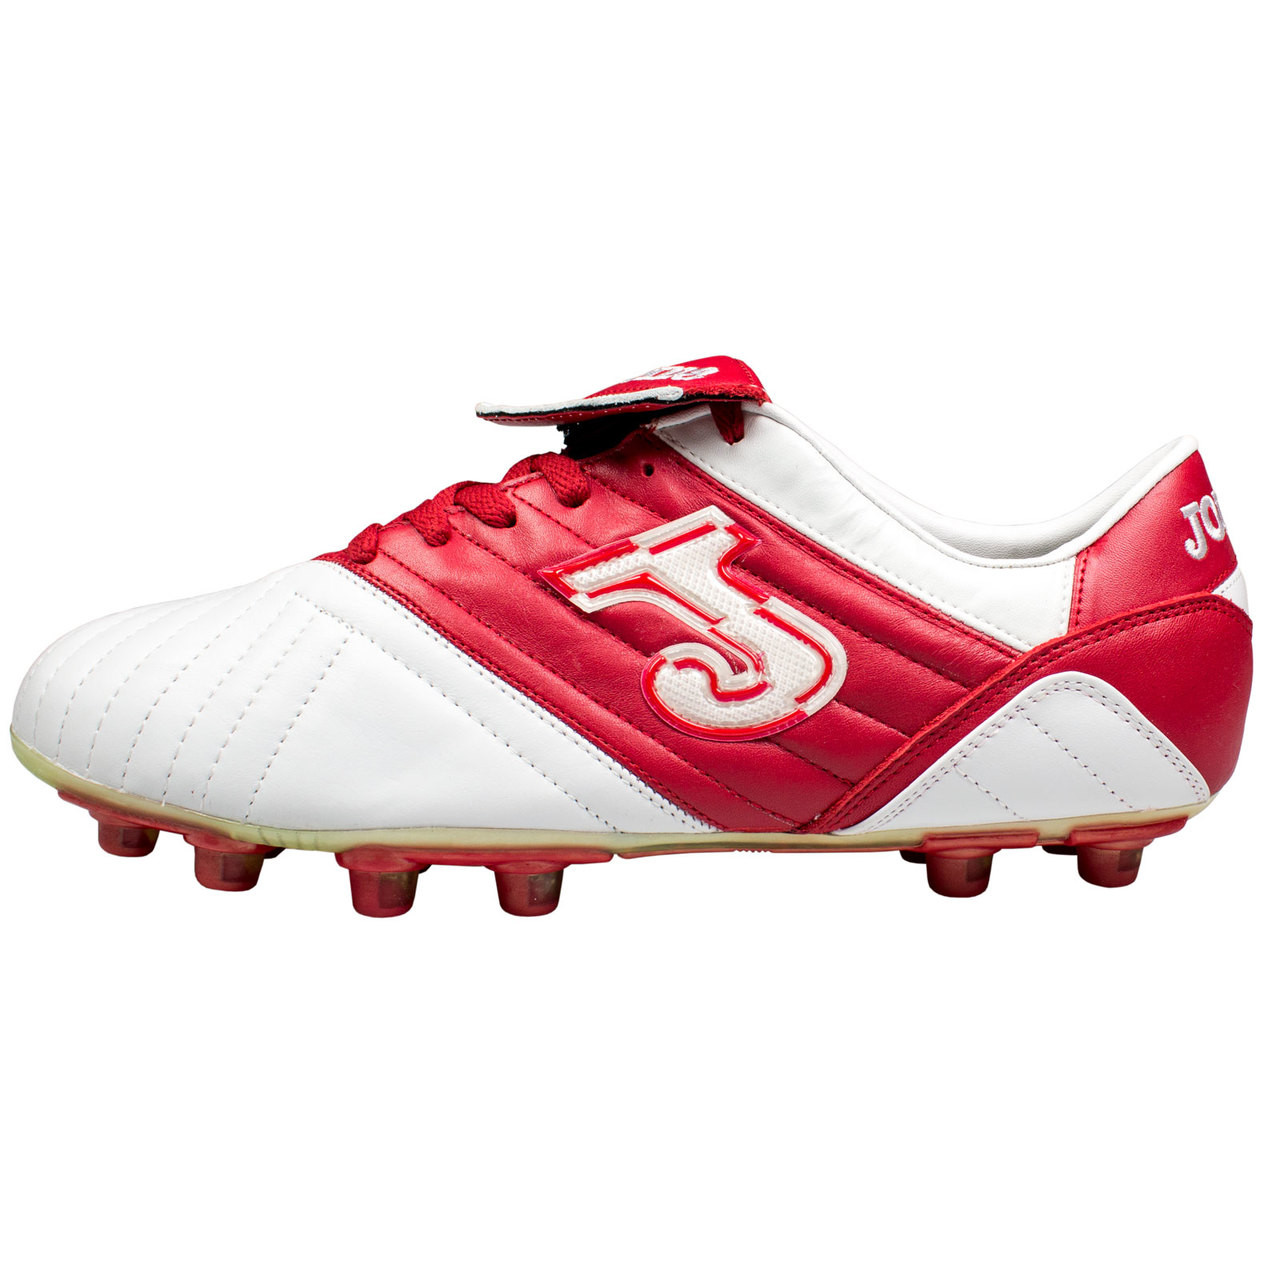 e0ef732e385 Joma Multitaco Numbero 10 Soccer Cleats - Red | Best Price